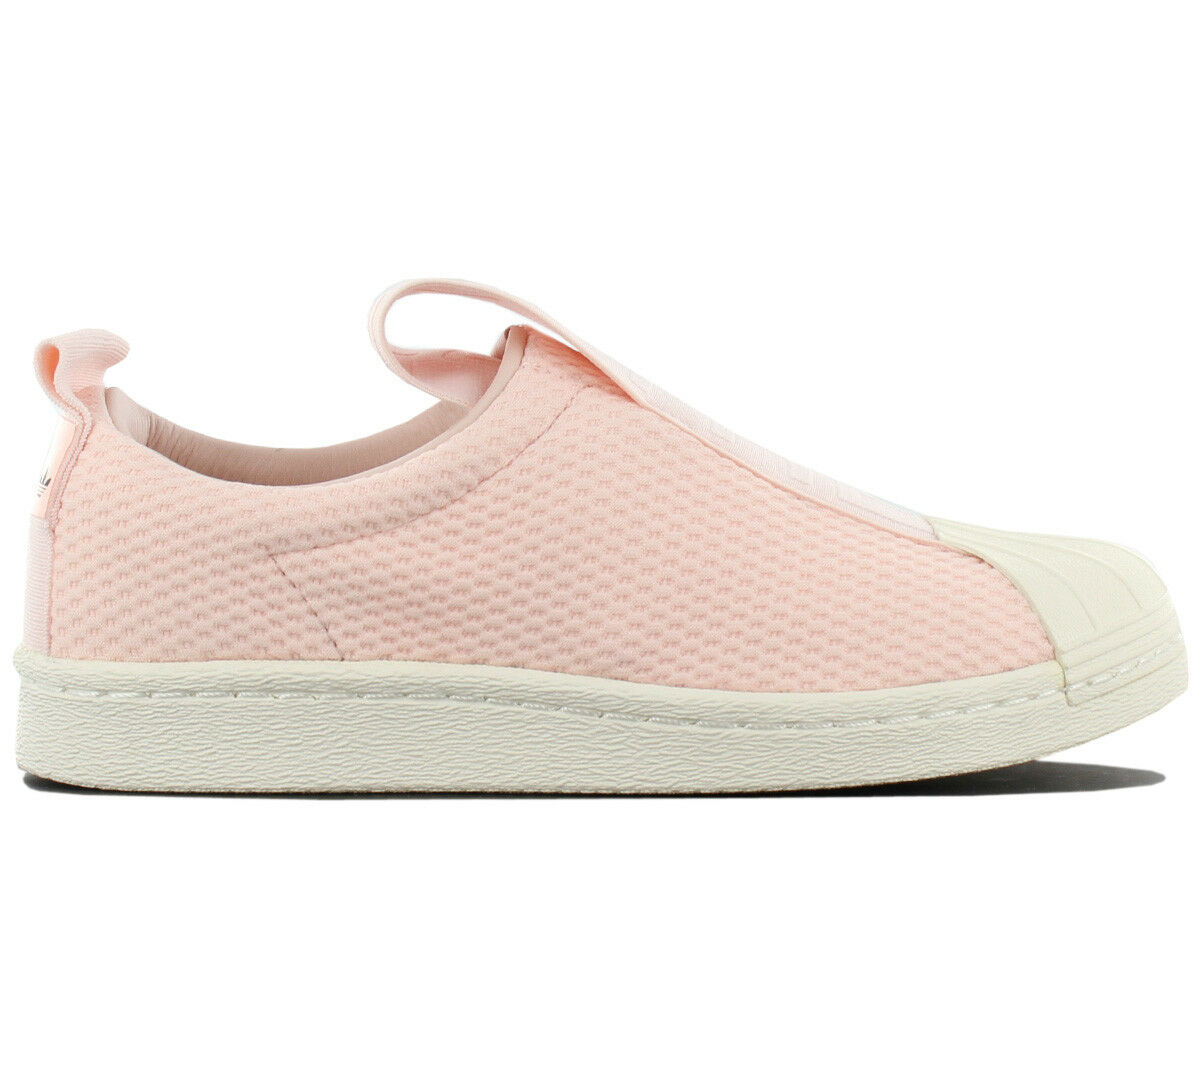 Adidas Originals Superstar BW35 Slip-On W-Women's Trainers shoes BY9138